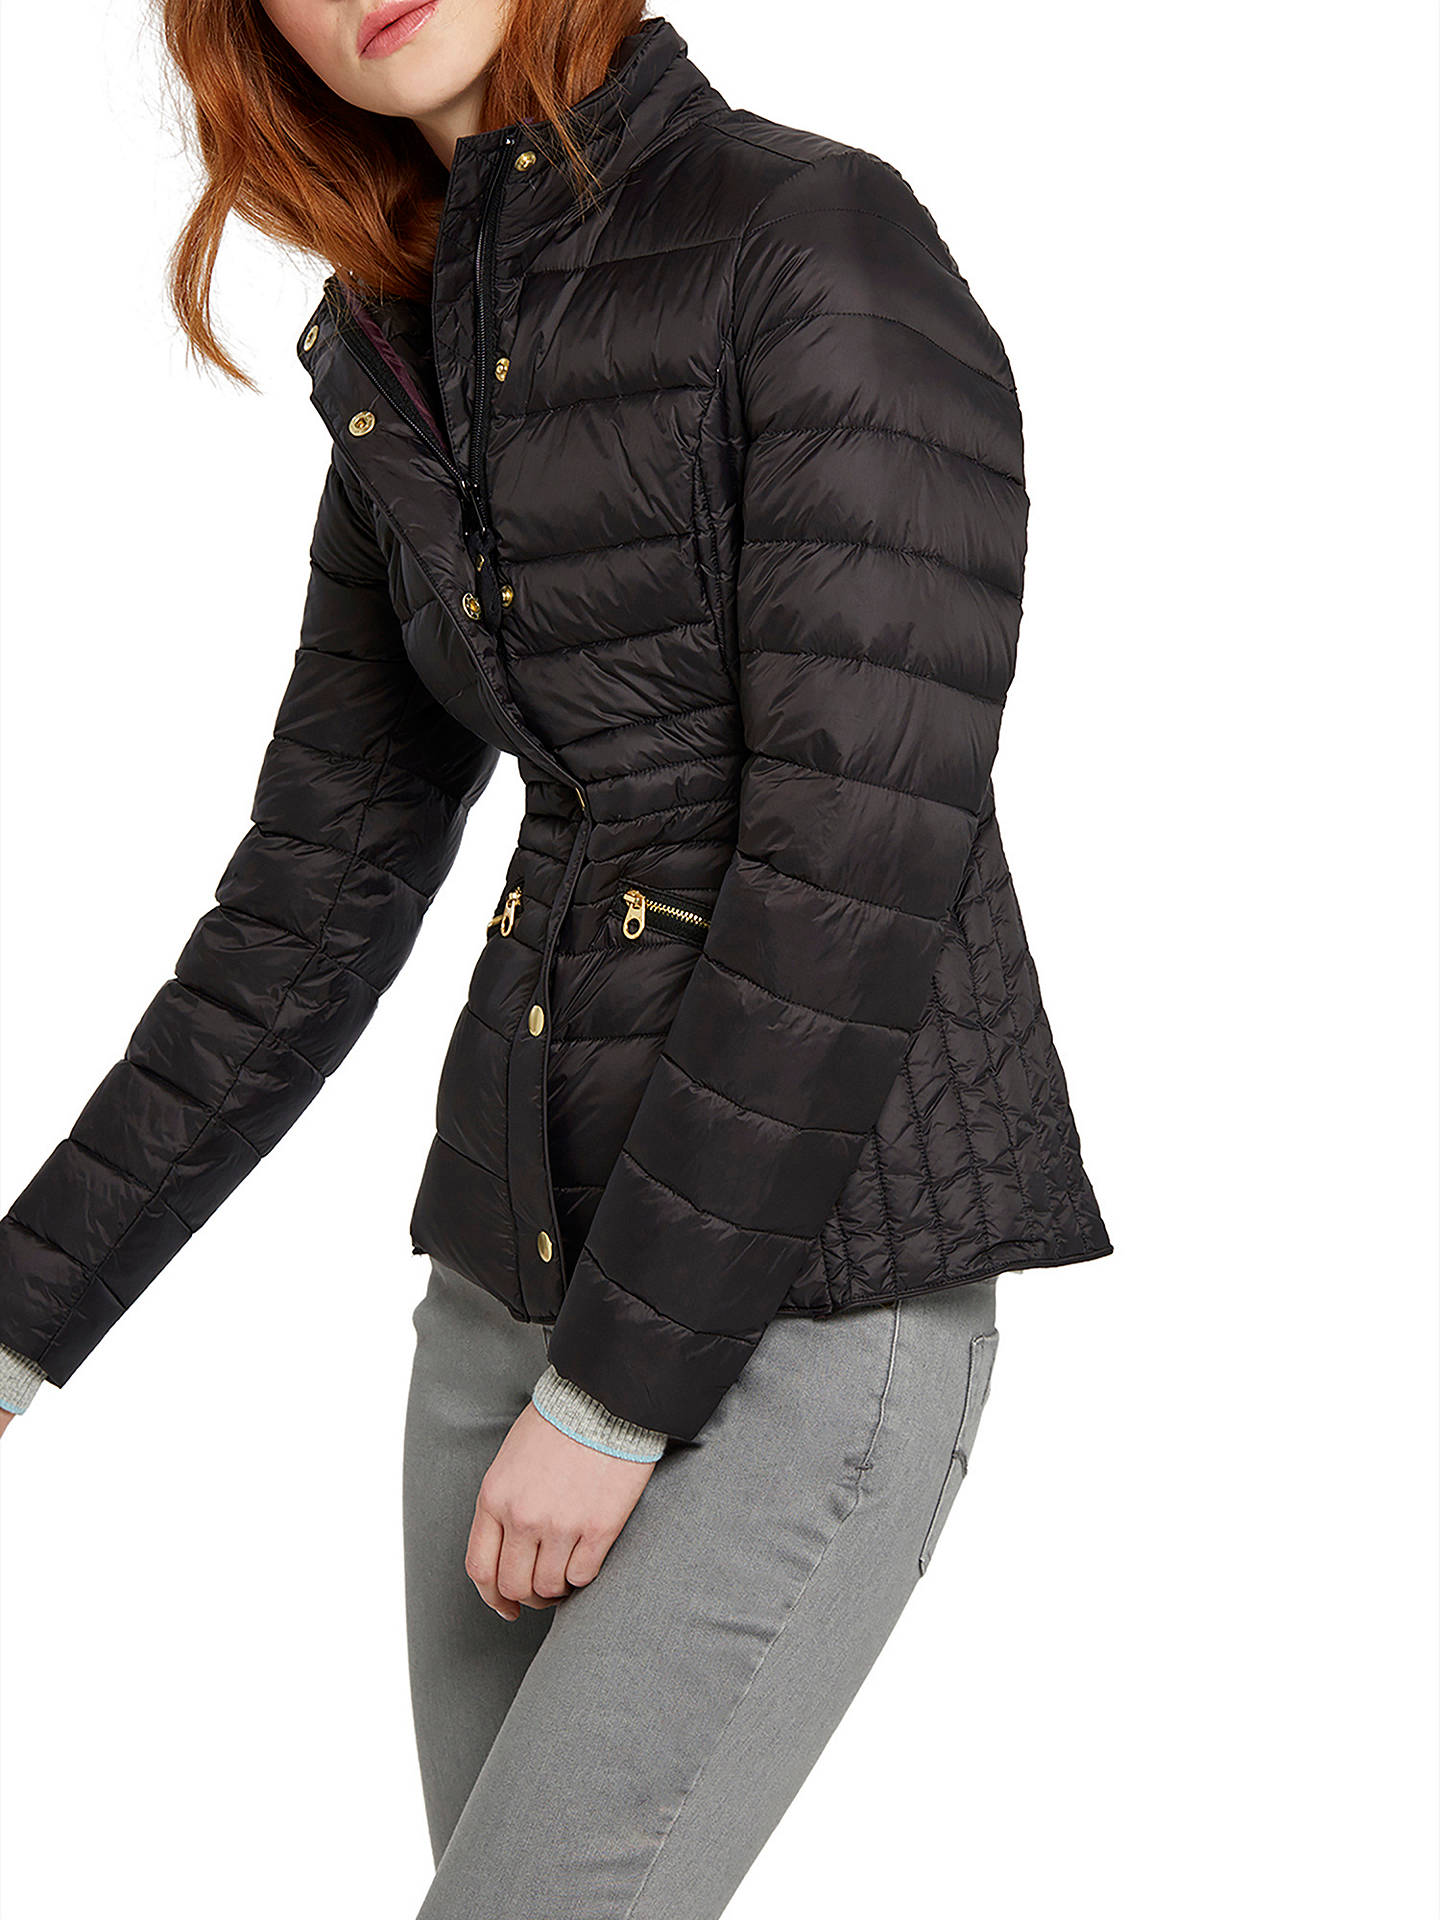 07bbd097dd1 Buy Joules Moritz Padded Feather and Down Jacket, Black, 8 Online at  johnlewis.